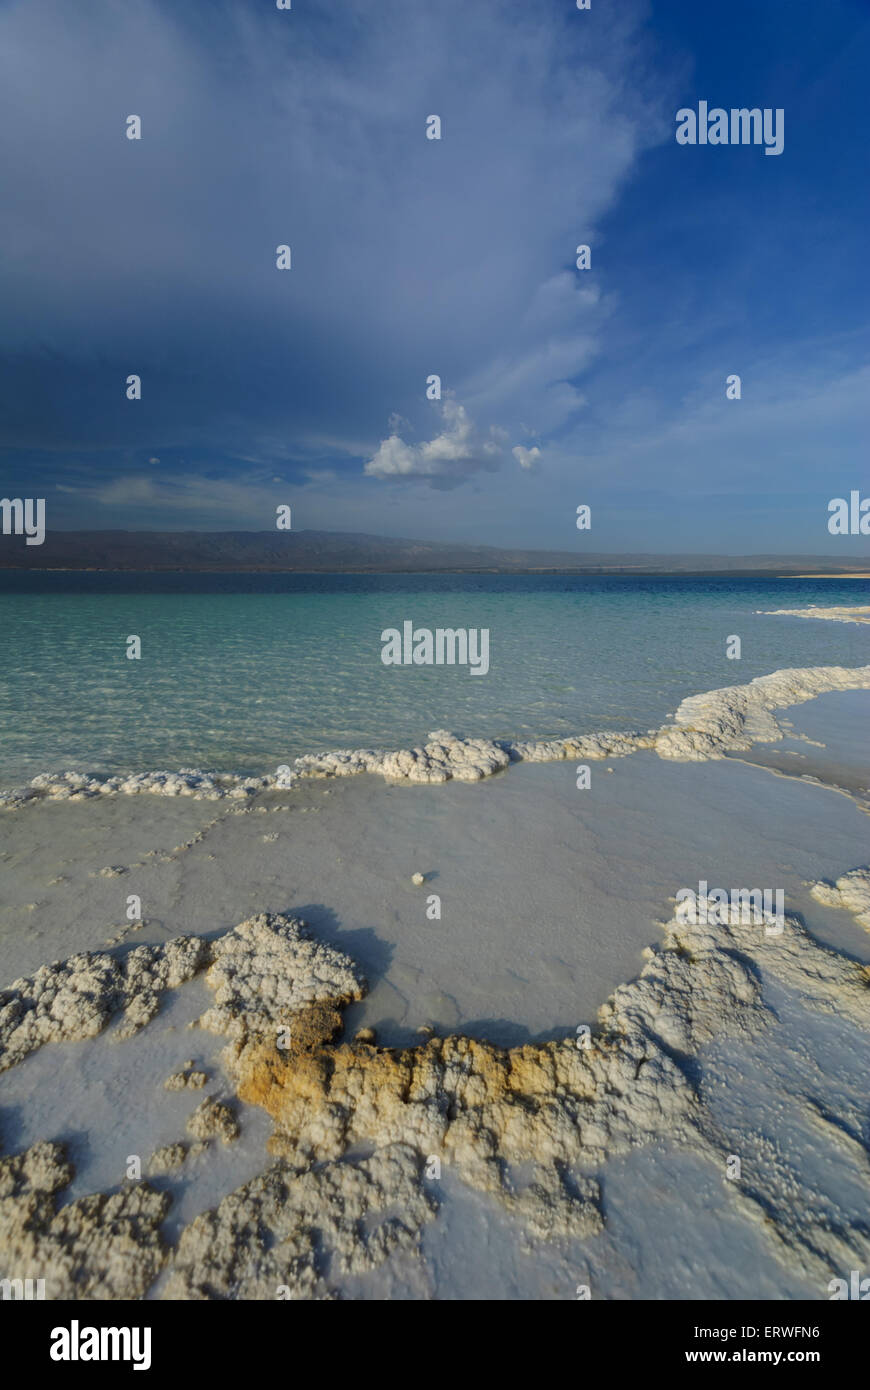 The natural salty rivers of Assal Lake in Djibouti, Africa - Stock Image